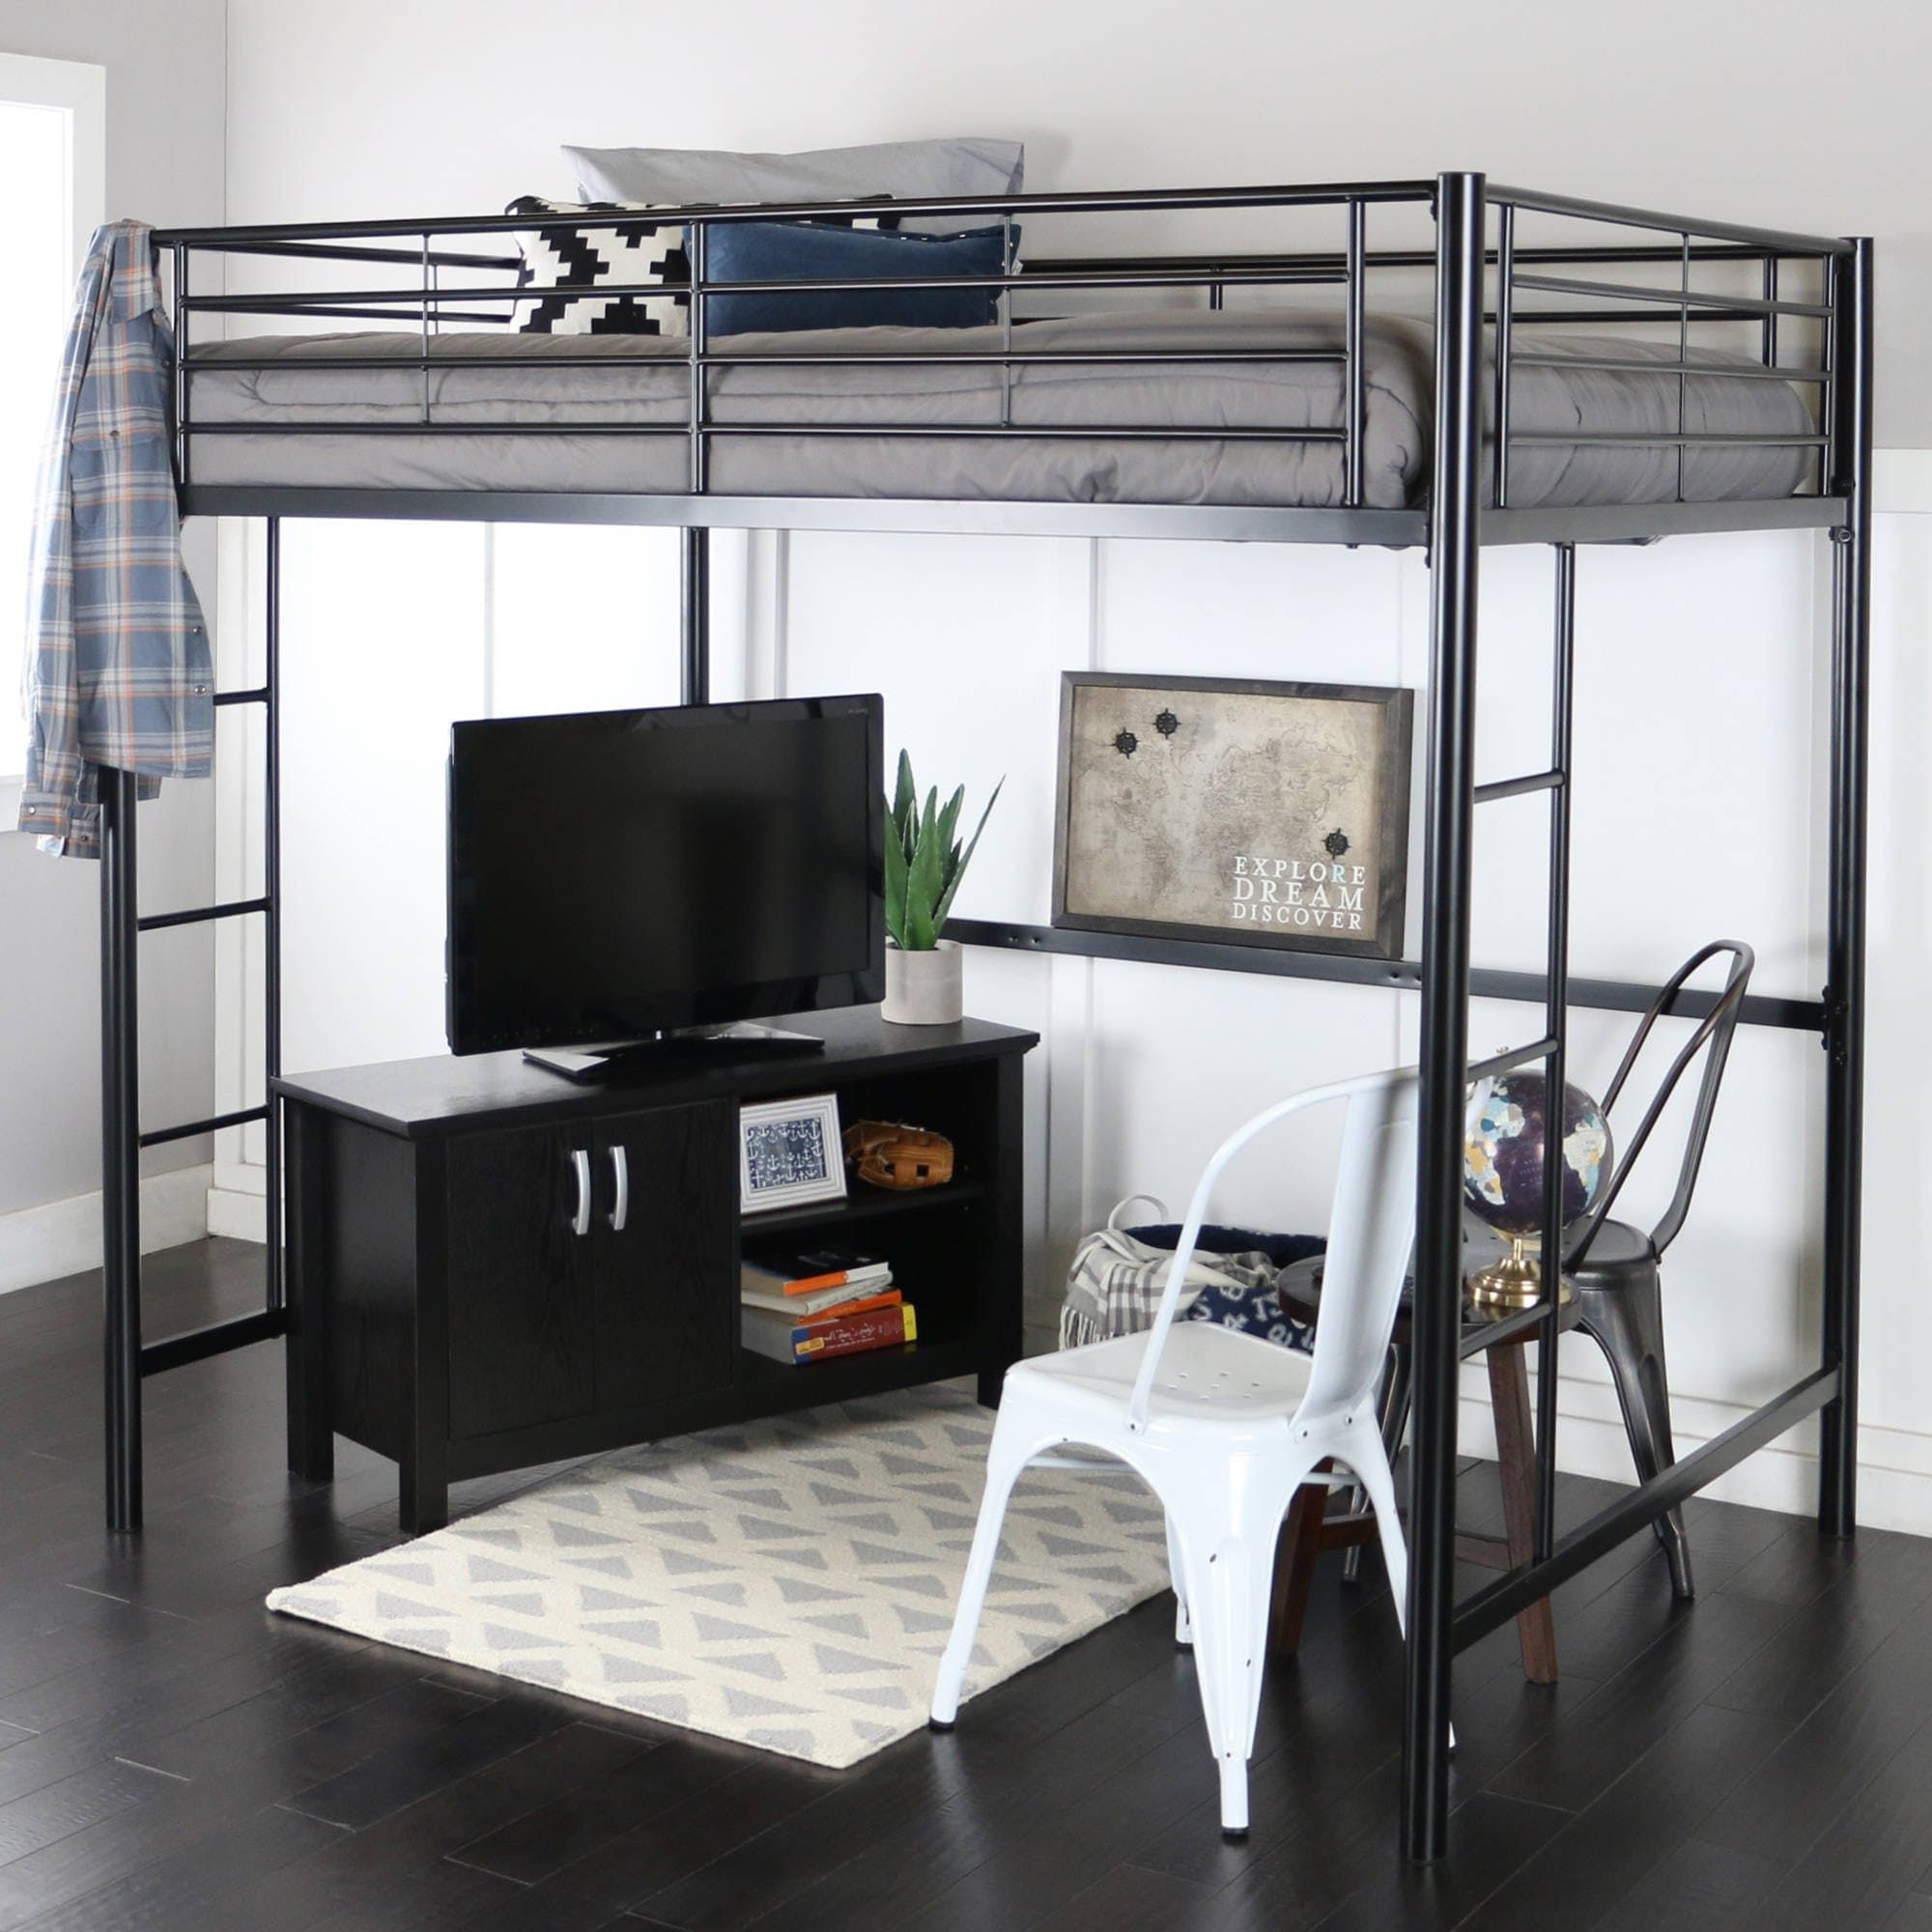 Metal loft bed ideas   Full Size Modern Loft Beds for Your Tiny Apartment  Loft beds